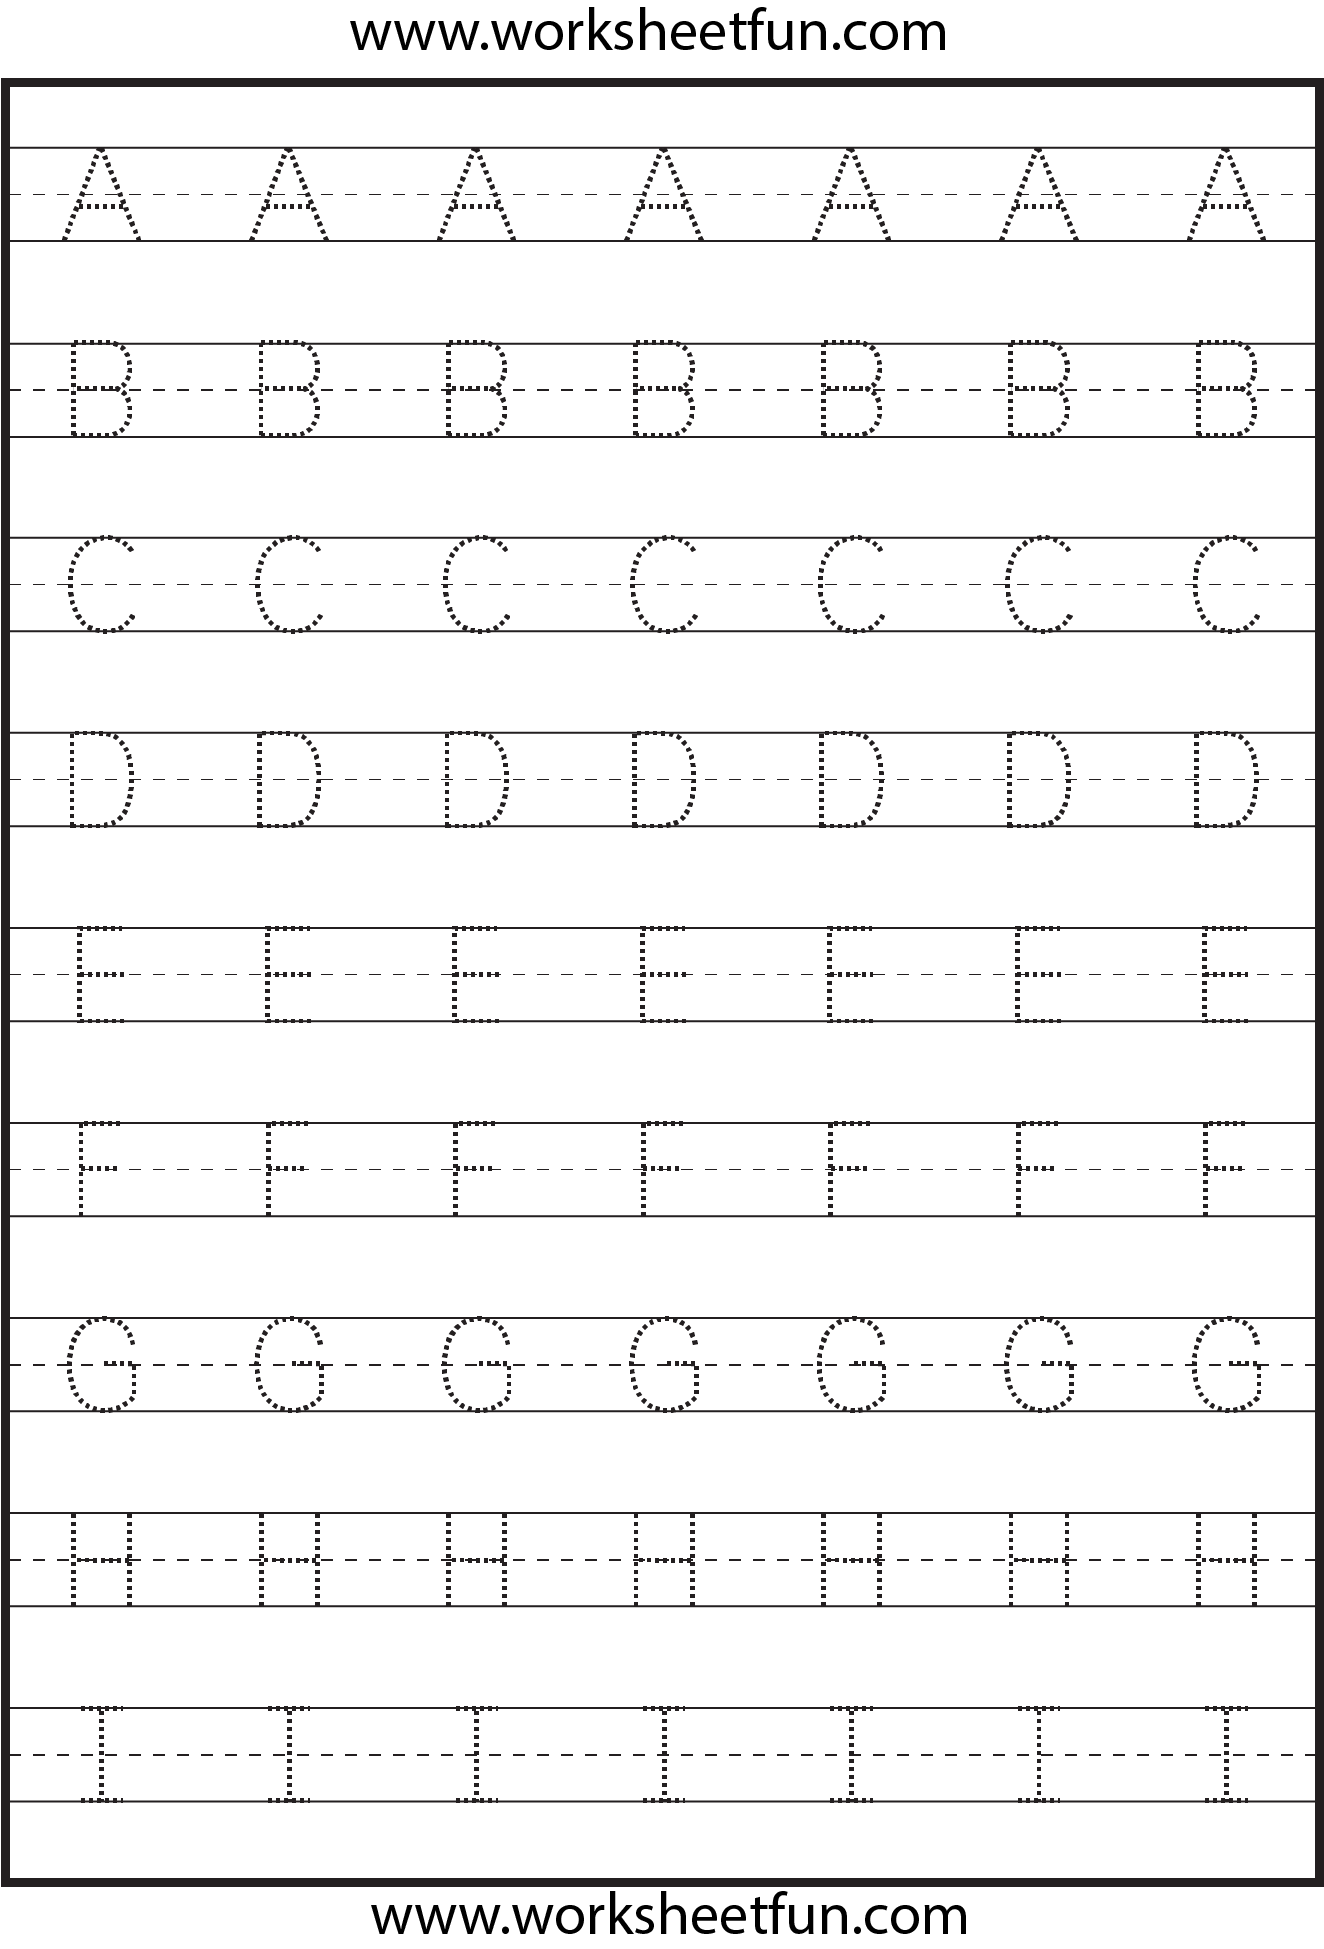 Worksheet Letters For Tracing tracing uppercase letters capital 3 worksheets letter tracing